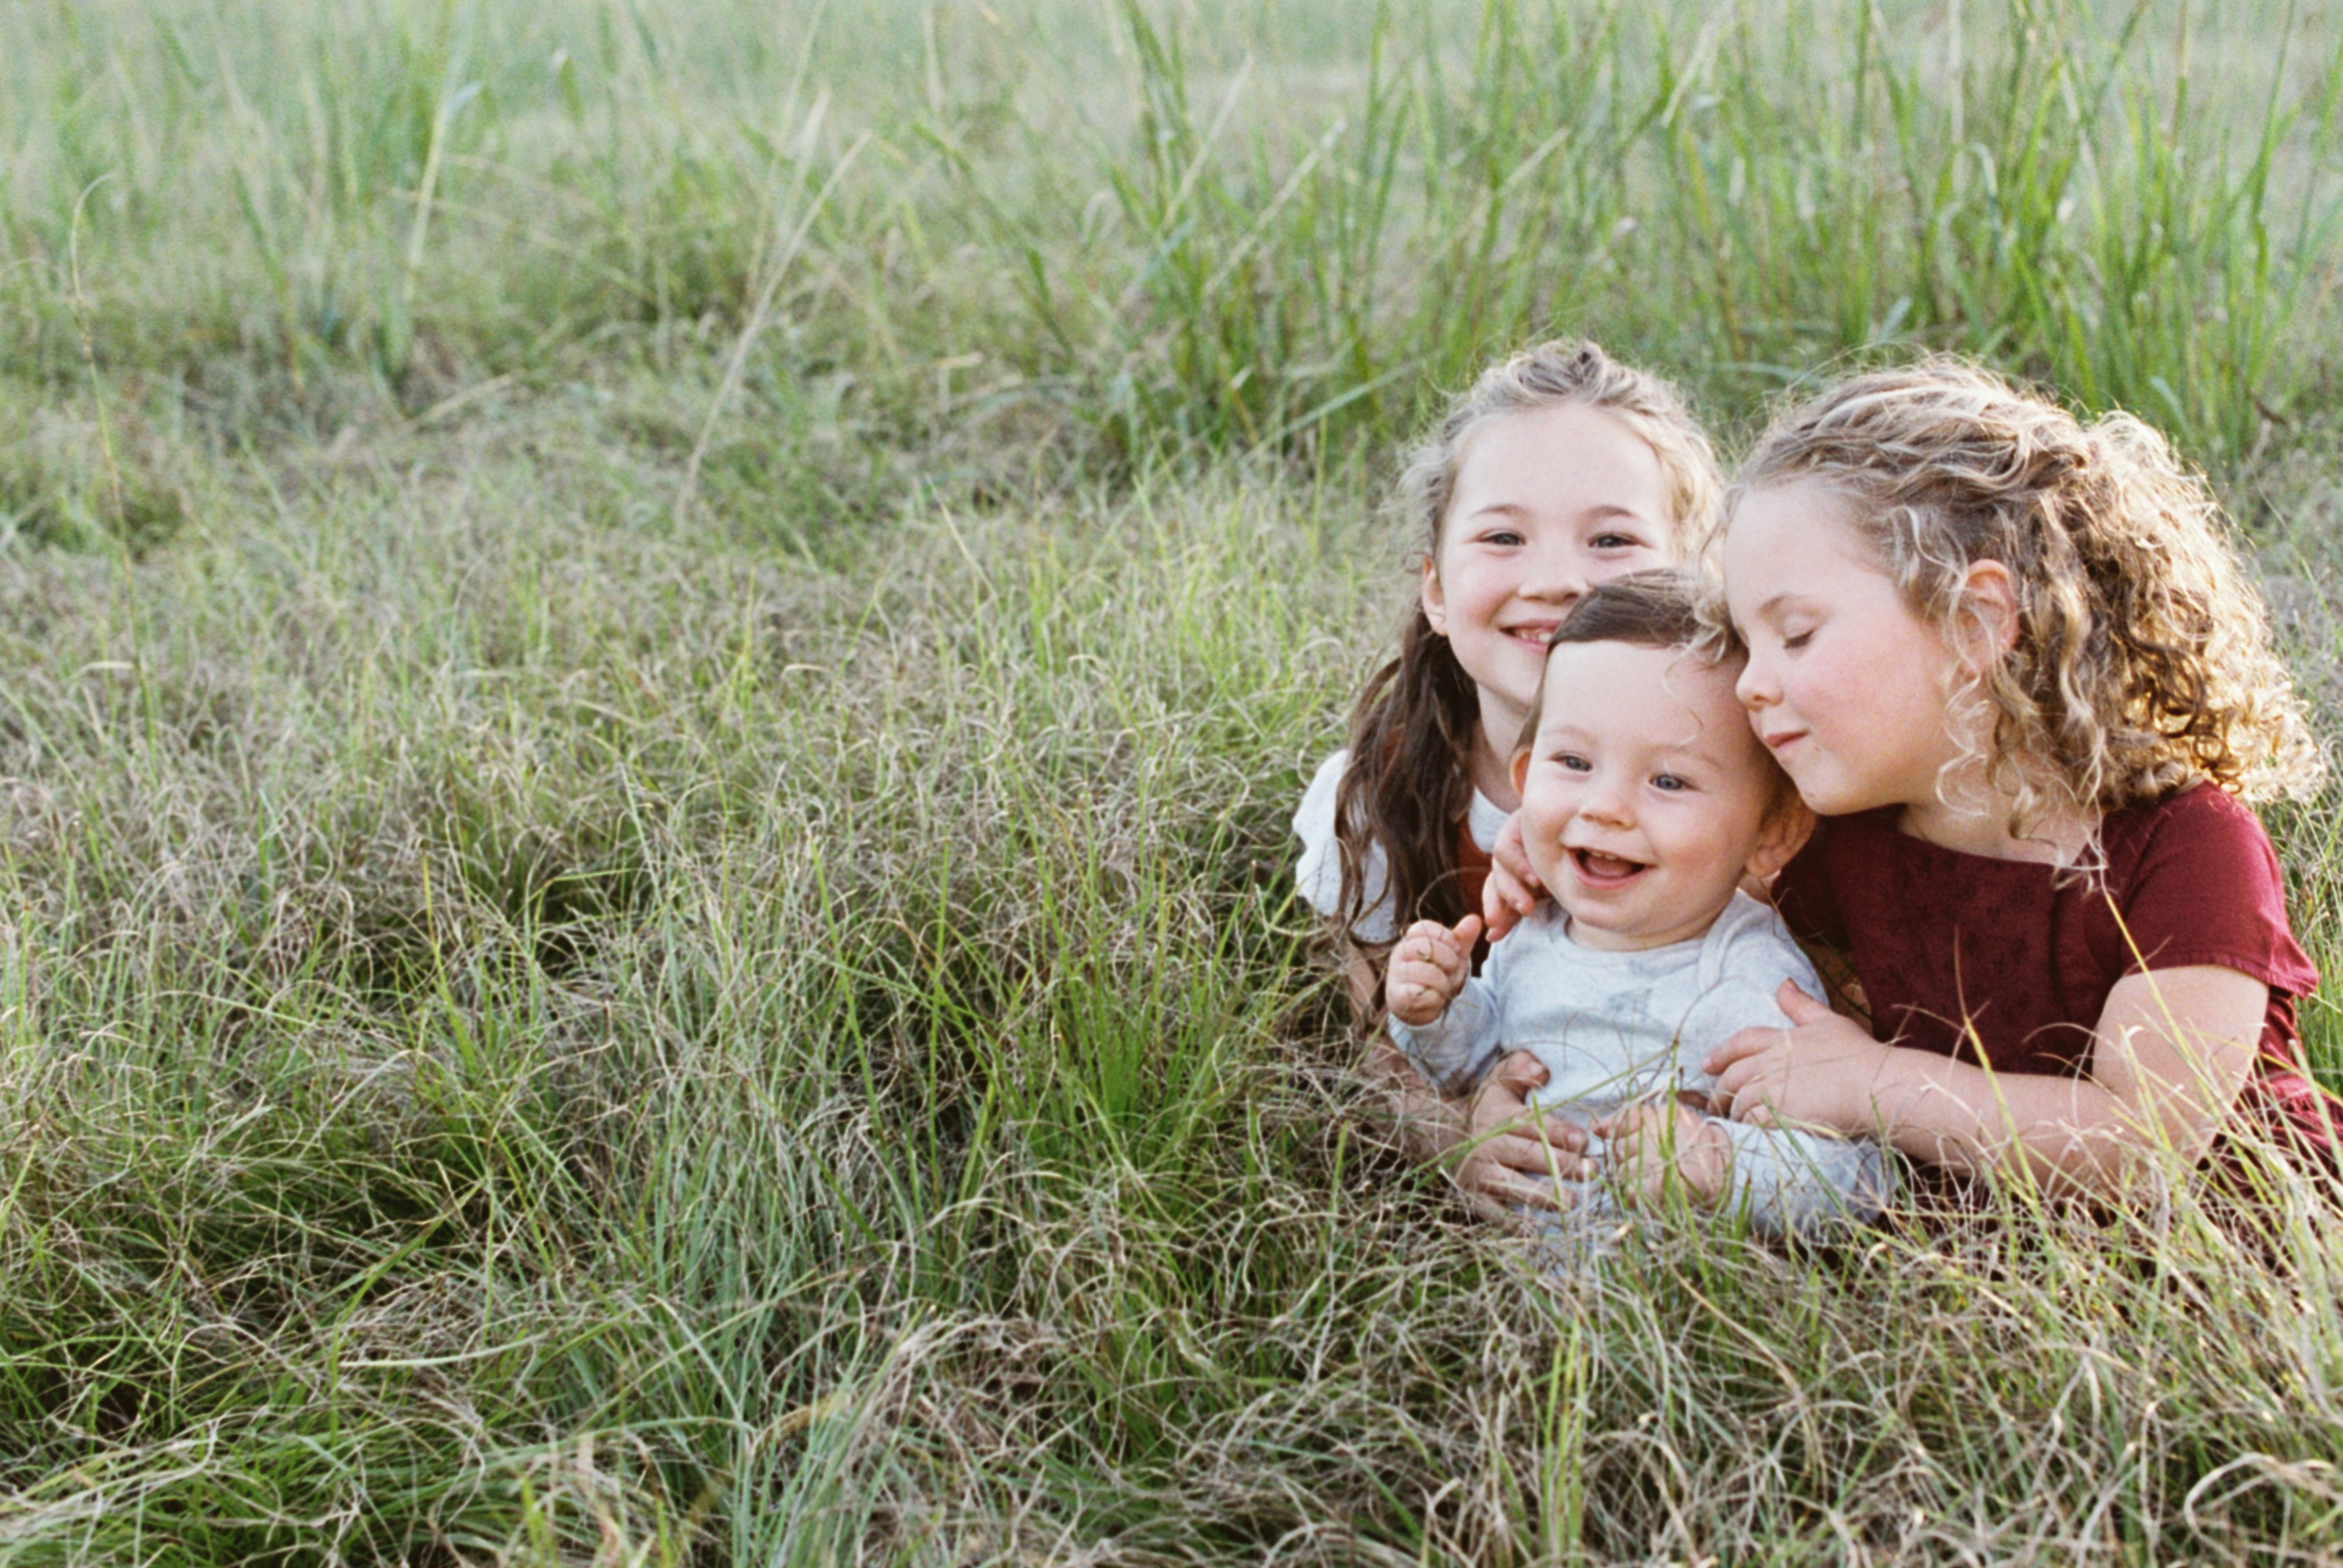 three-kids-in-a-field